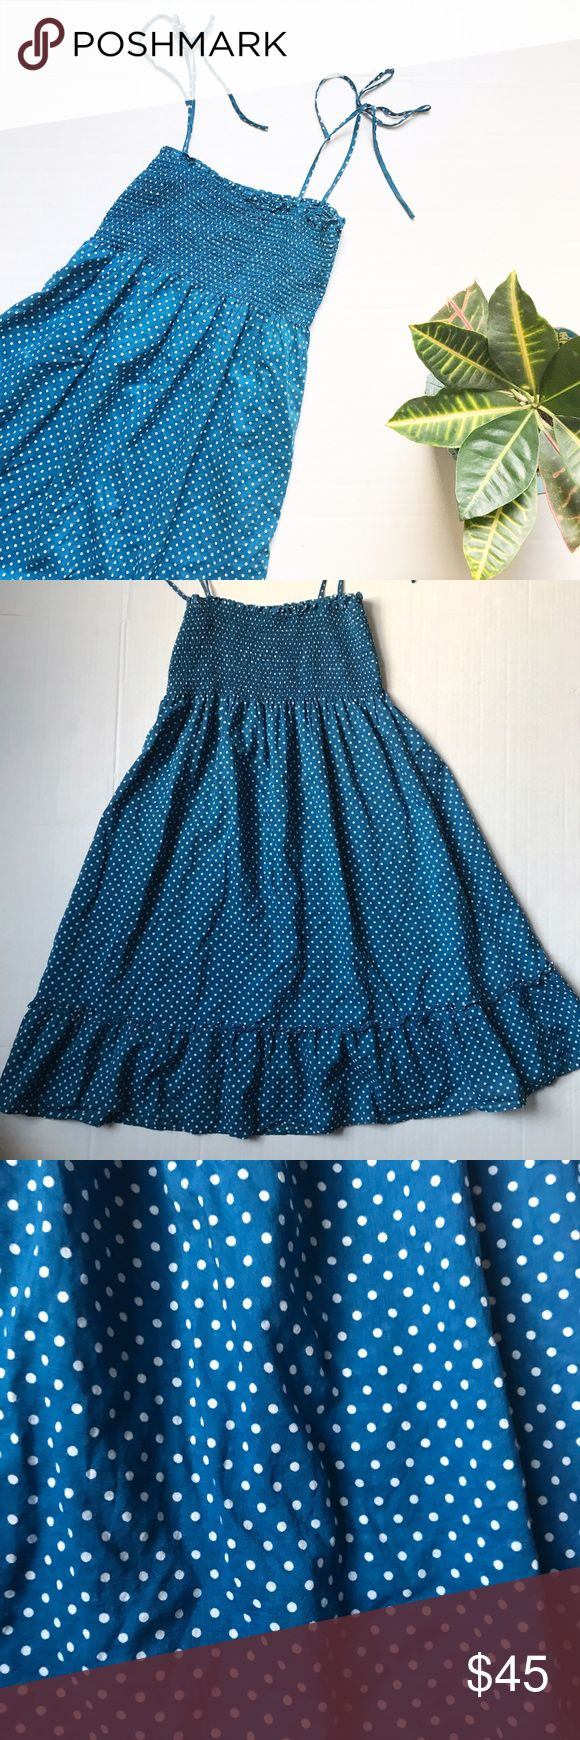 J. Crew Smocked Top Polka Dot Dress Smocked top Polka Dot dress from J. Crew. Size: M. Color: Blue and white. Smocked top with tie straps and ruffle bottom. 100% cotton. Length: 35 inches long. J. Crew Dresses